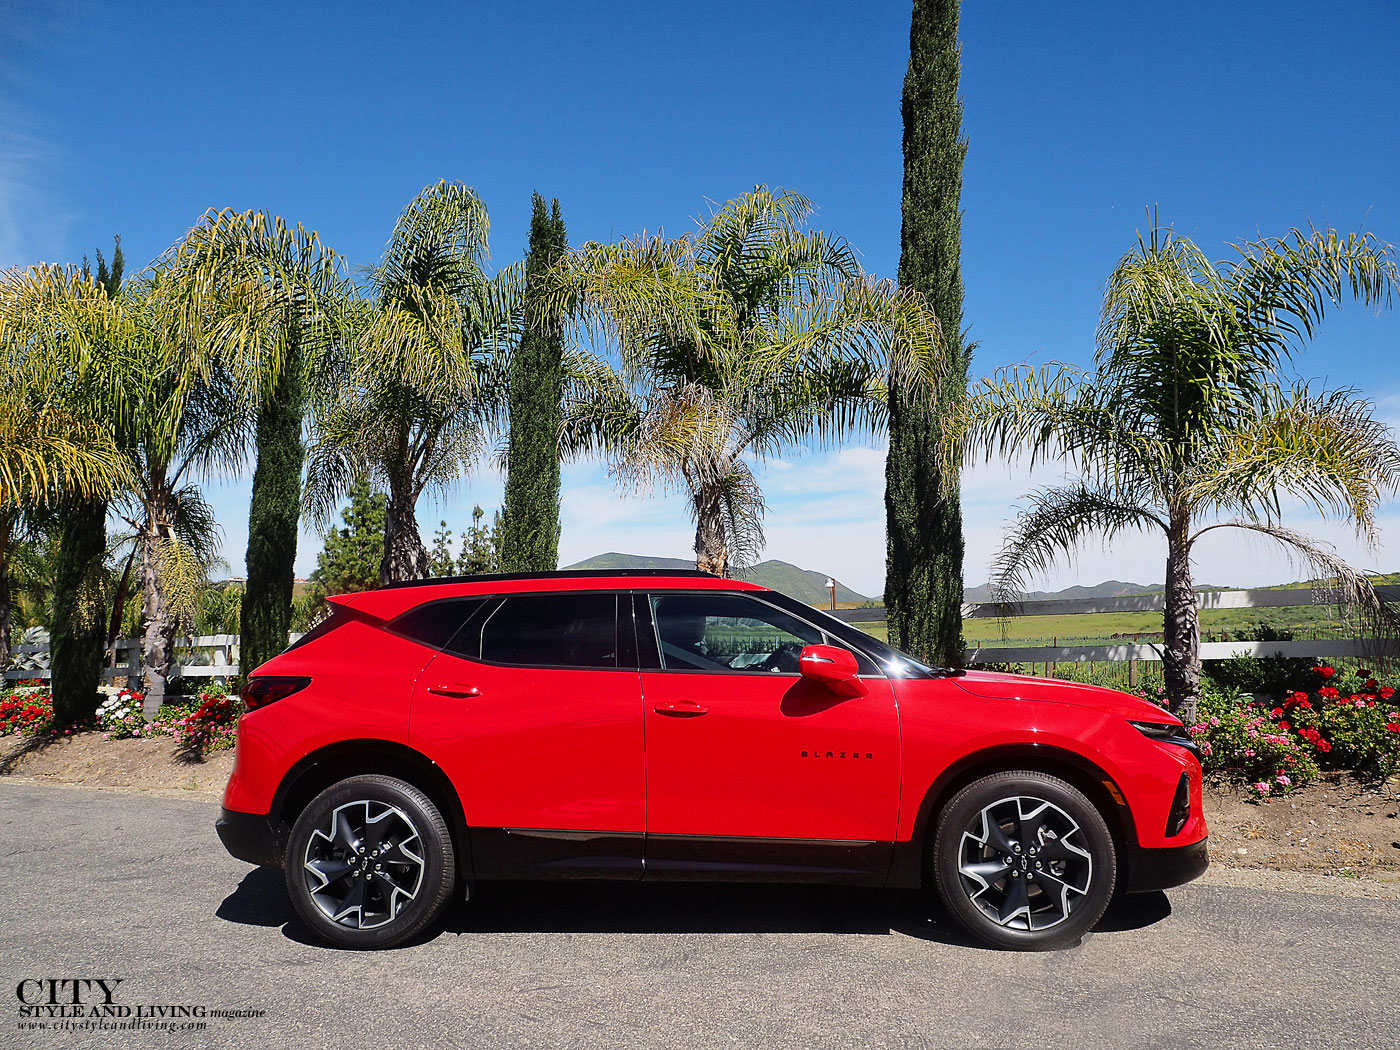 City Style and Living Magazine Summer 2019 Travel Southern California Temecula Chevrolet Blazer in Temecula winery